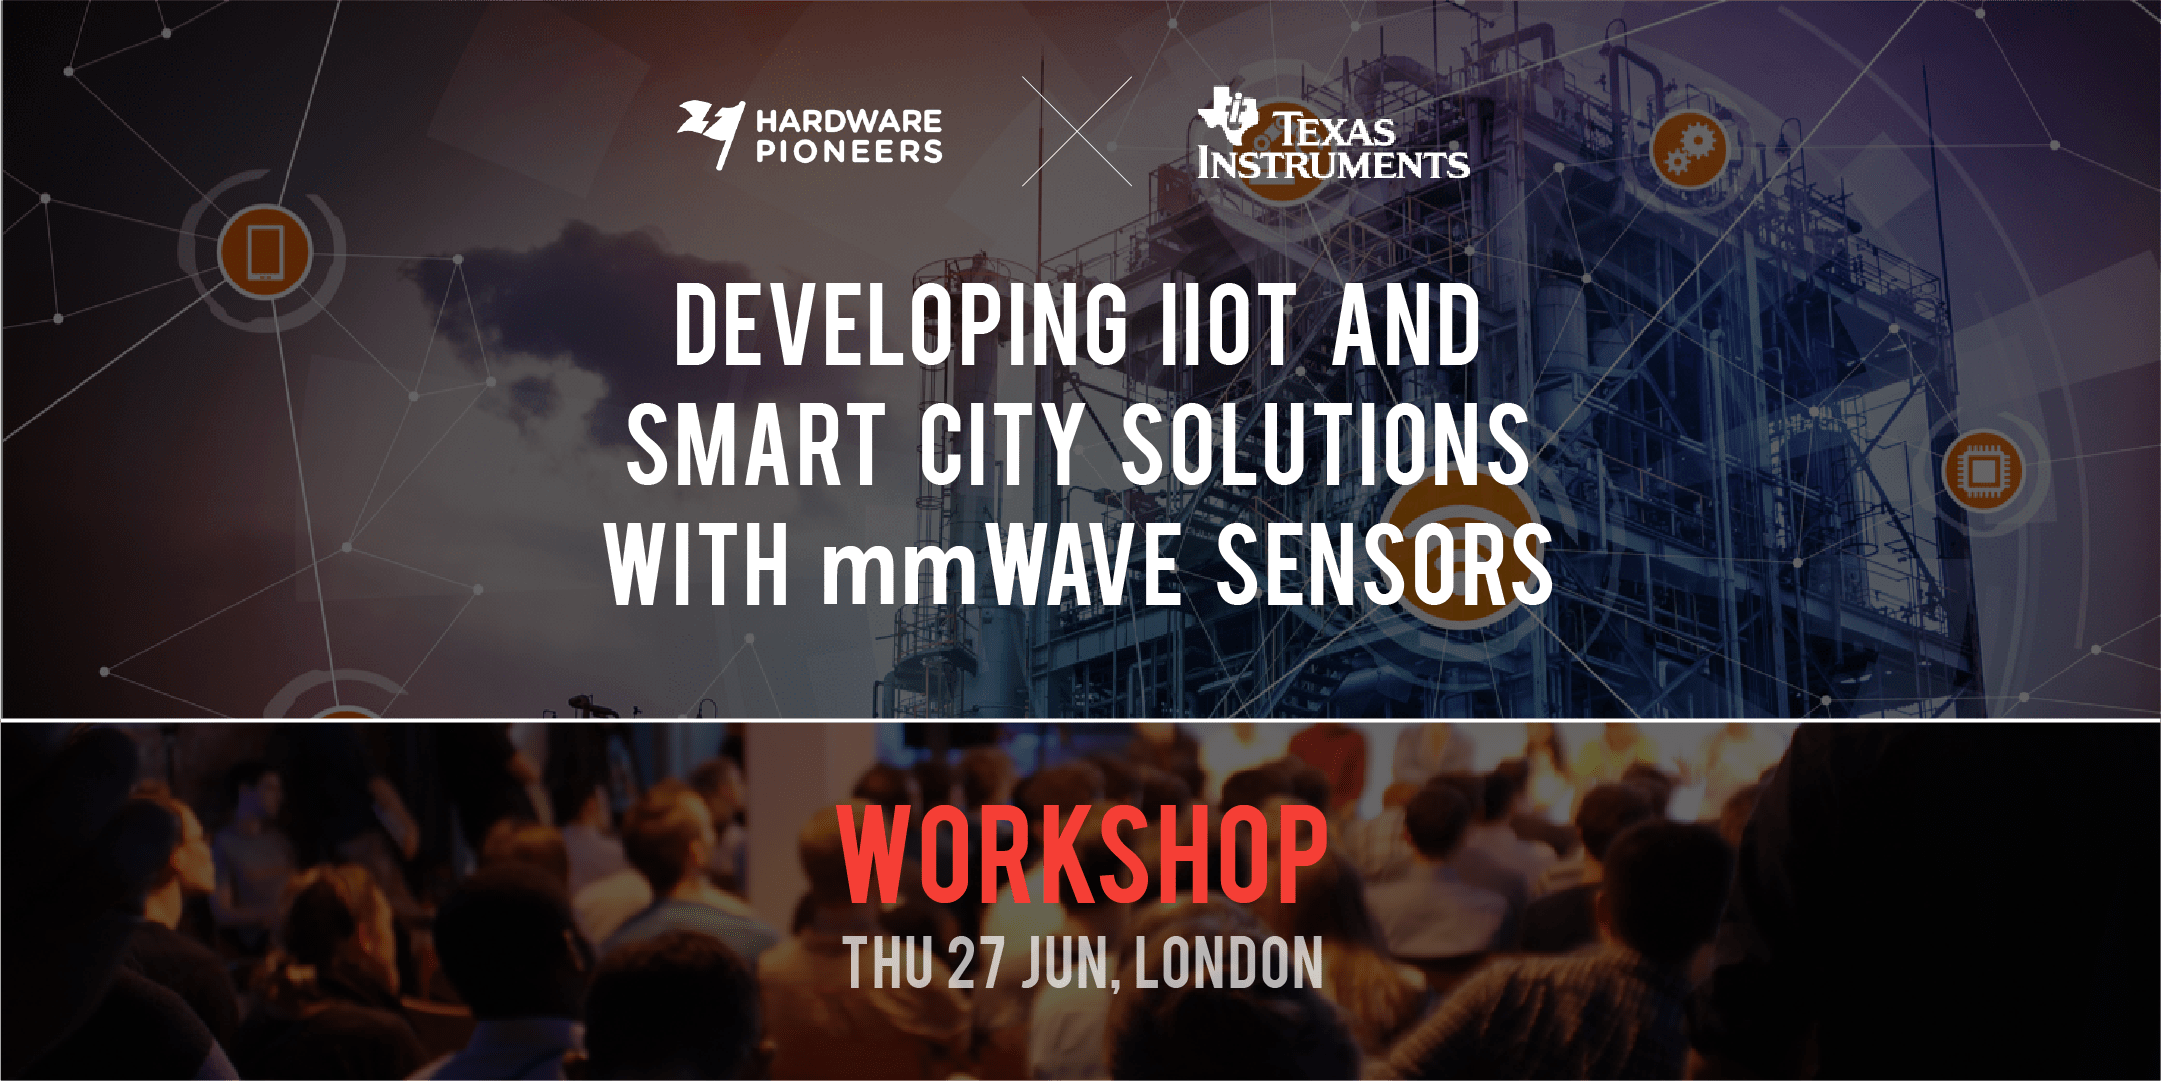 TI Workshop: Developing IIoT and Smart City Solutions with mmWave